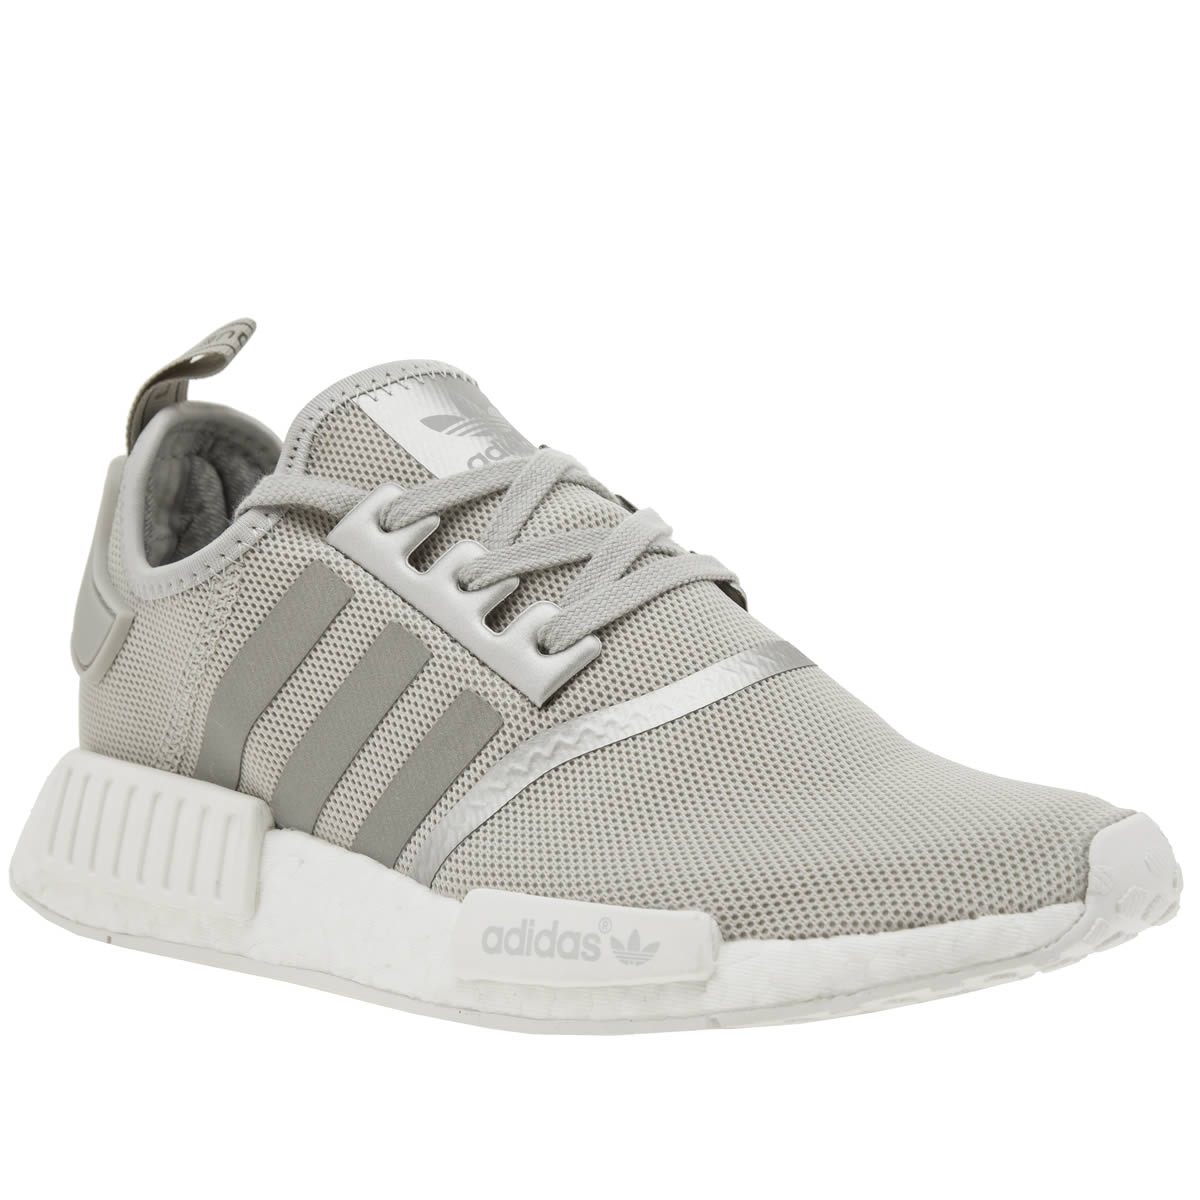 adidas trainers images